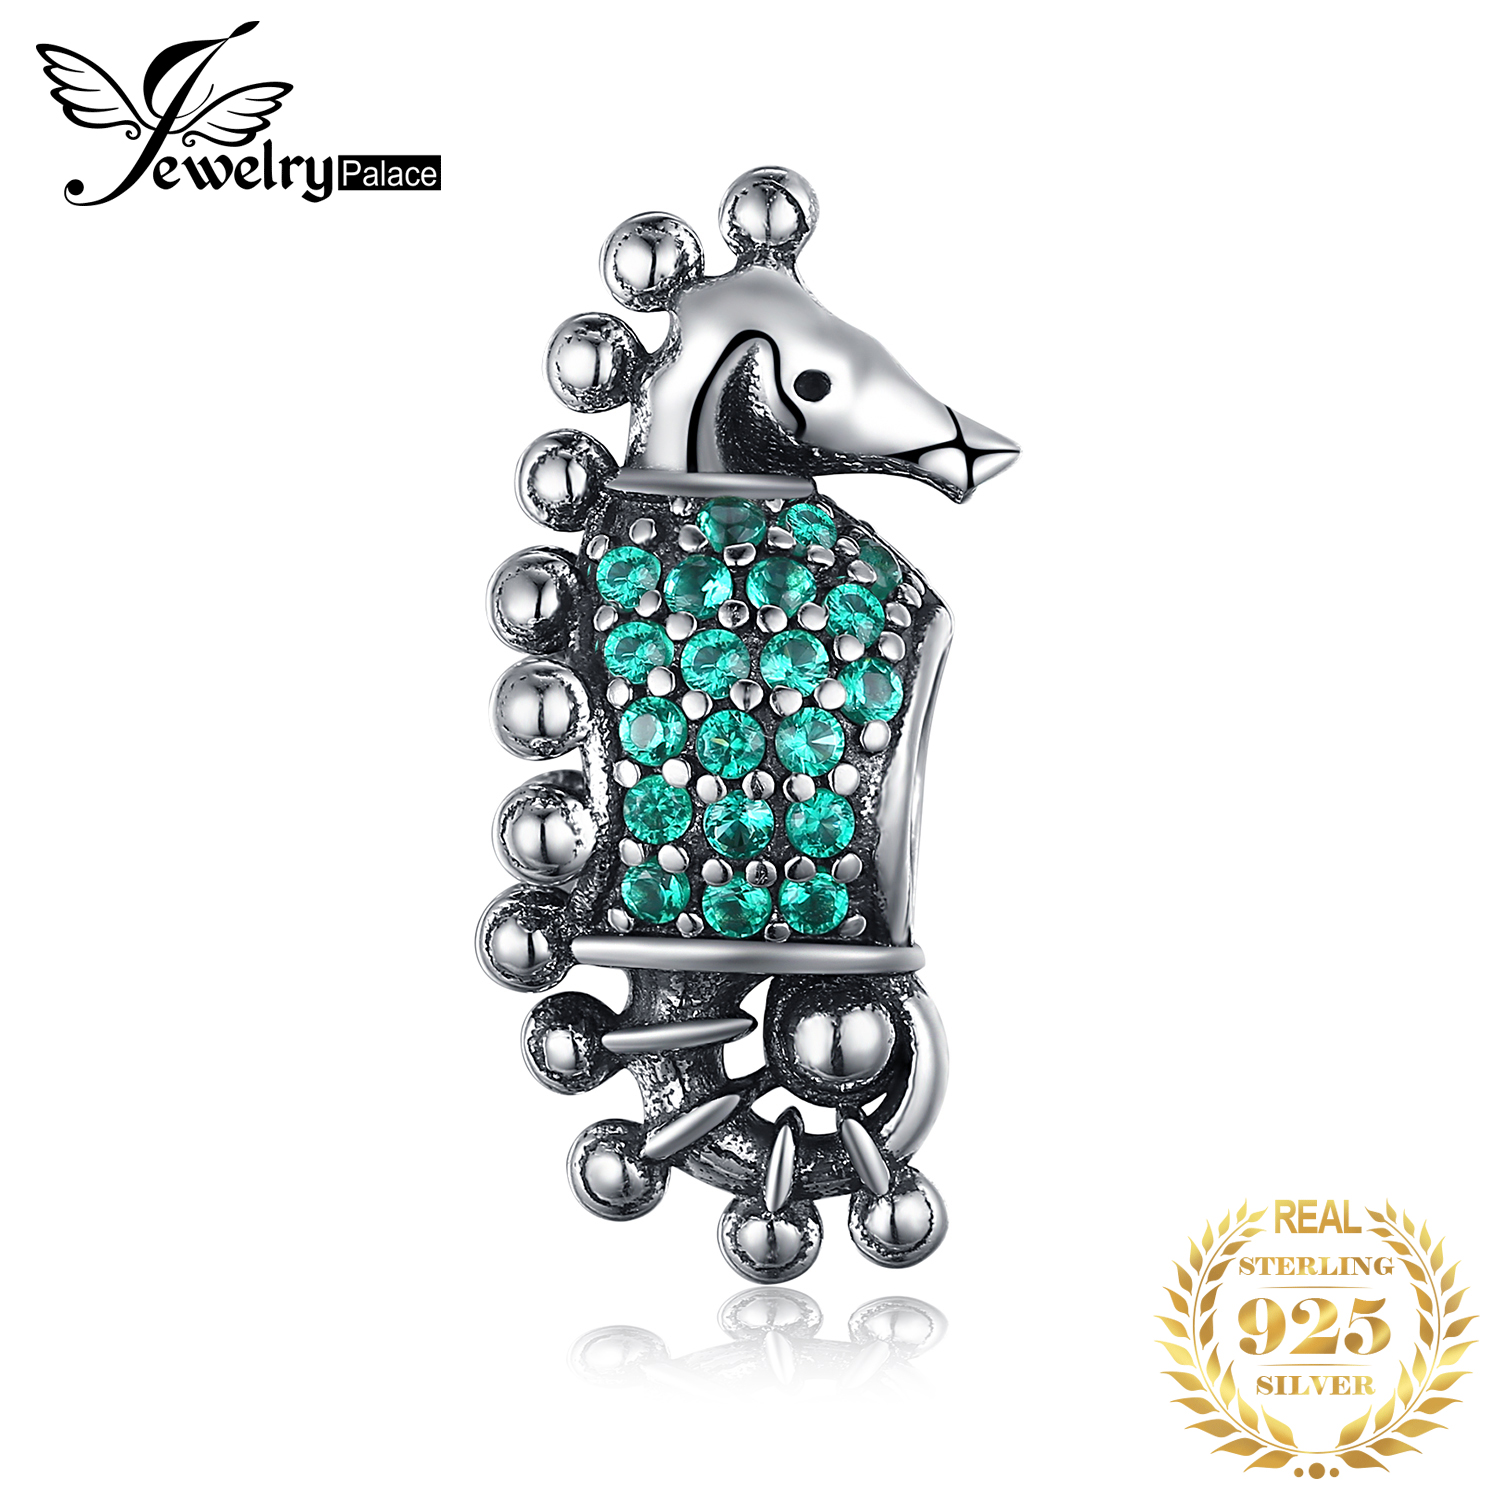 JewelryPalace 925 Sterling Silver Sea Horse Beads Charms Silver 925 Original For Bracelet Silver 925 Original For Jewelry Making